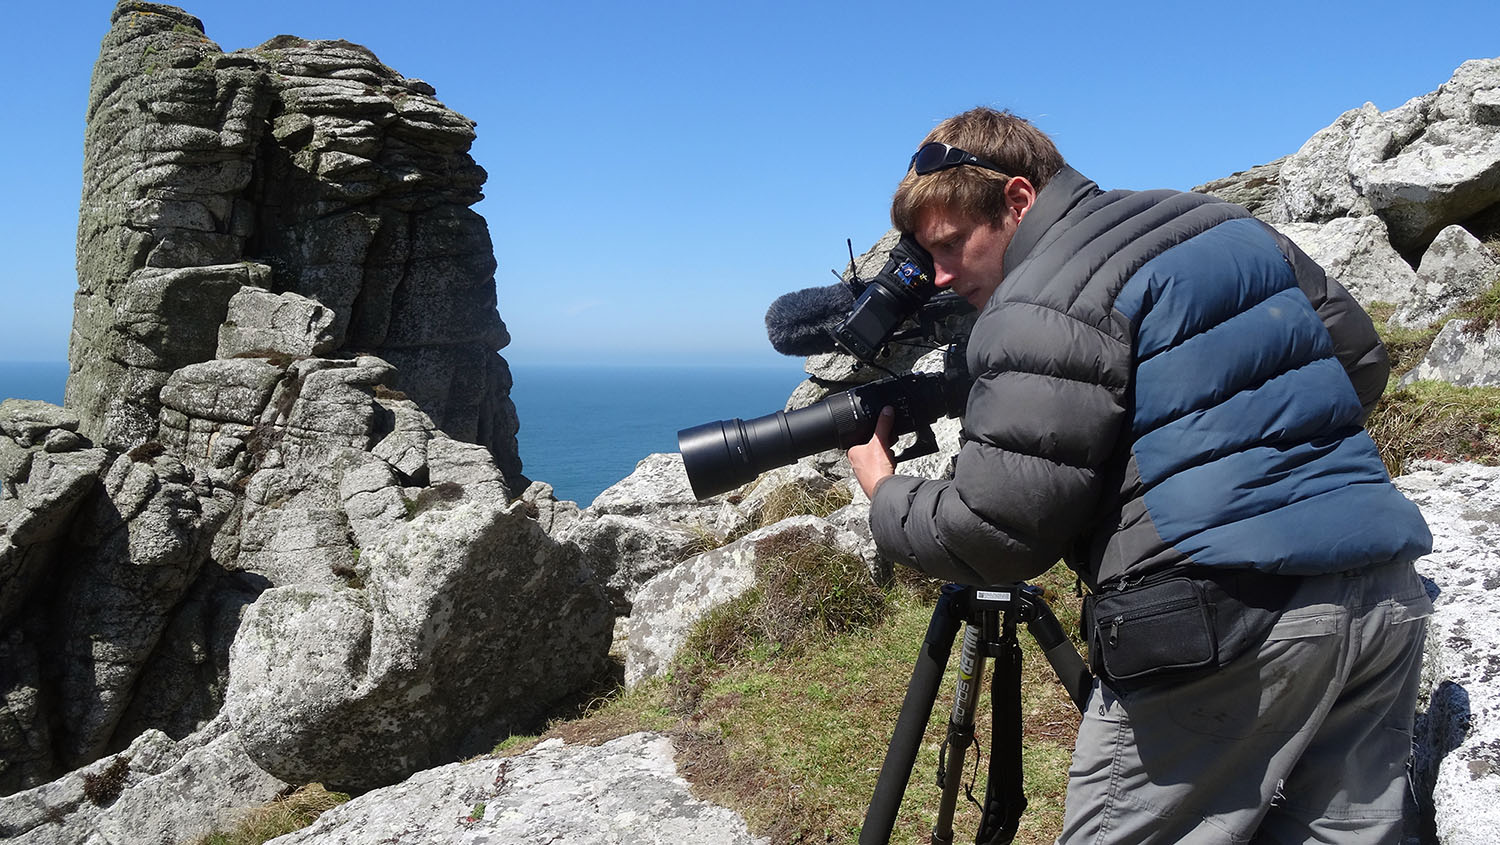 Filming puffin colonies on Lundy Island off the shores of North Devon, UK